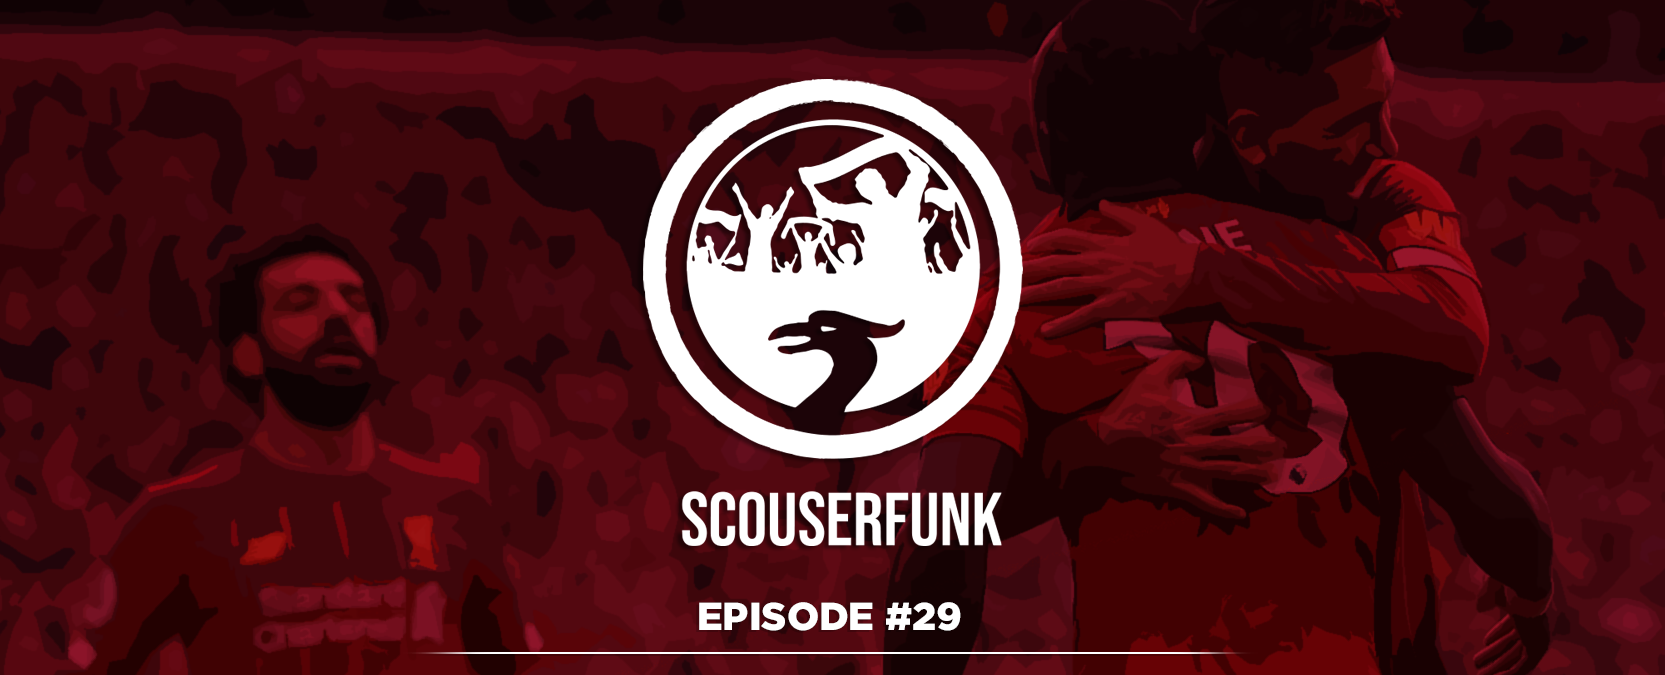 Scouserfunk - Der Liverpool FC Podcast - Redmen Family Germany - Liverpool Fans Deutschland